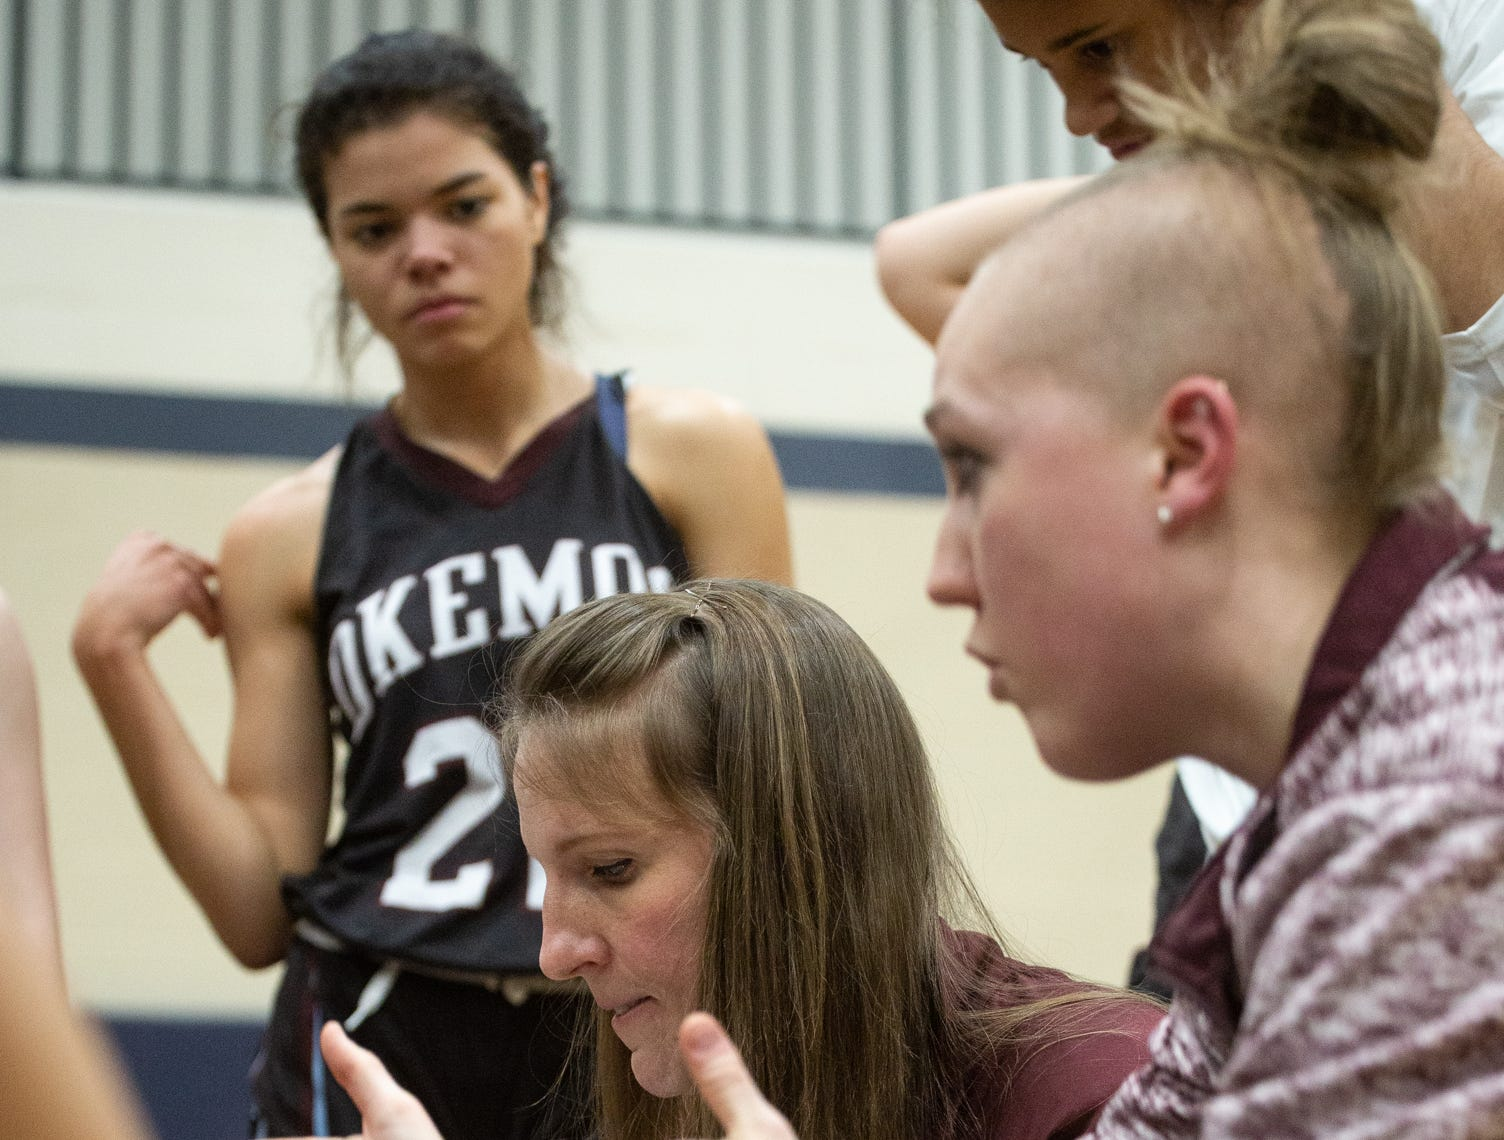 Okemos Coaches, Kristen Rasmussen and Megan Williams talk strategy with Chieftens during timeout, Tuesday, Jan. 8, 2019, at East Lansing High School.